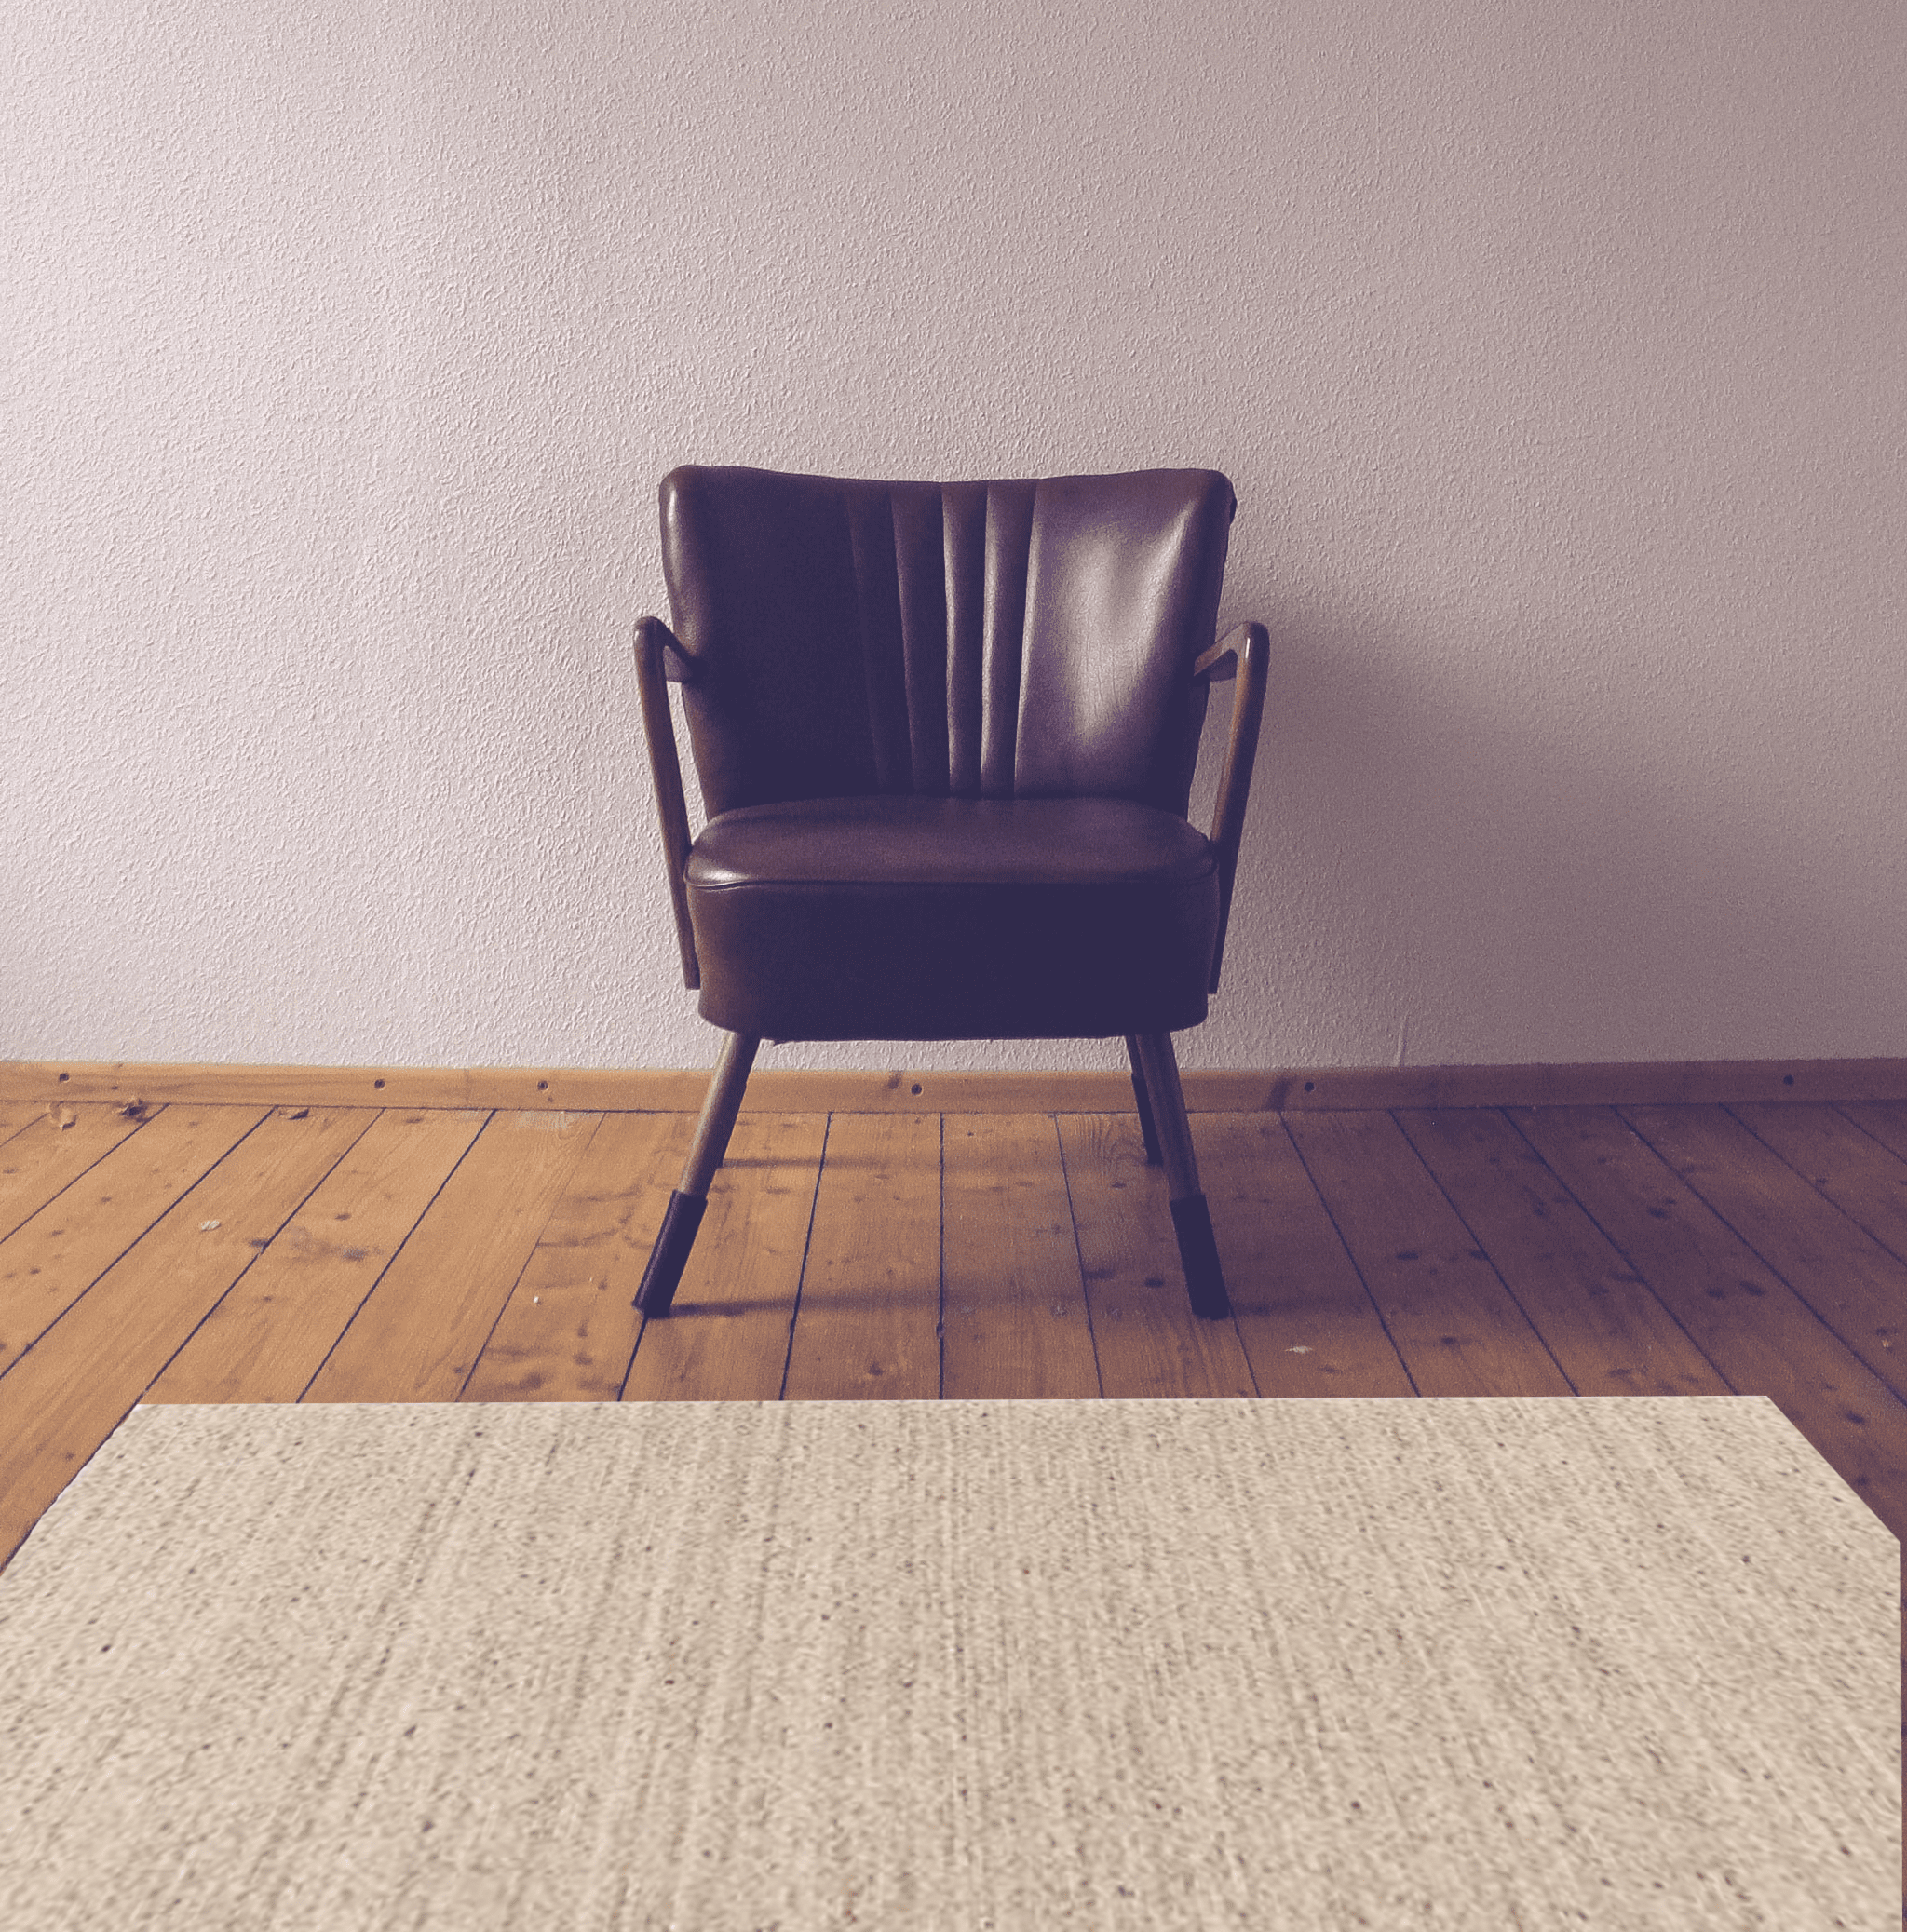 What Rugs Are Safe For Hardwood Floors